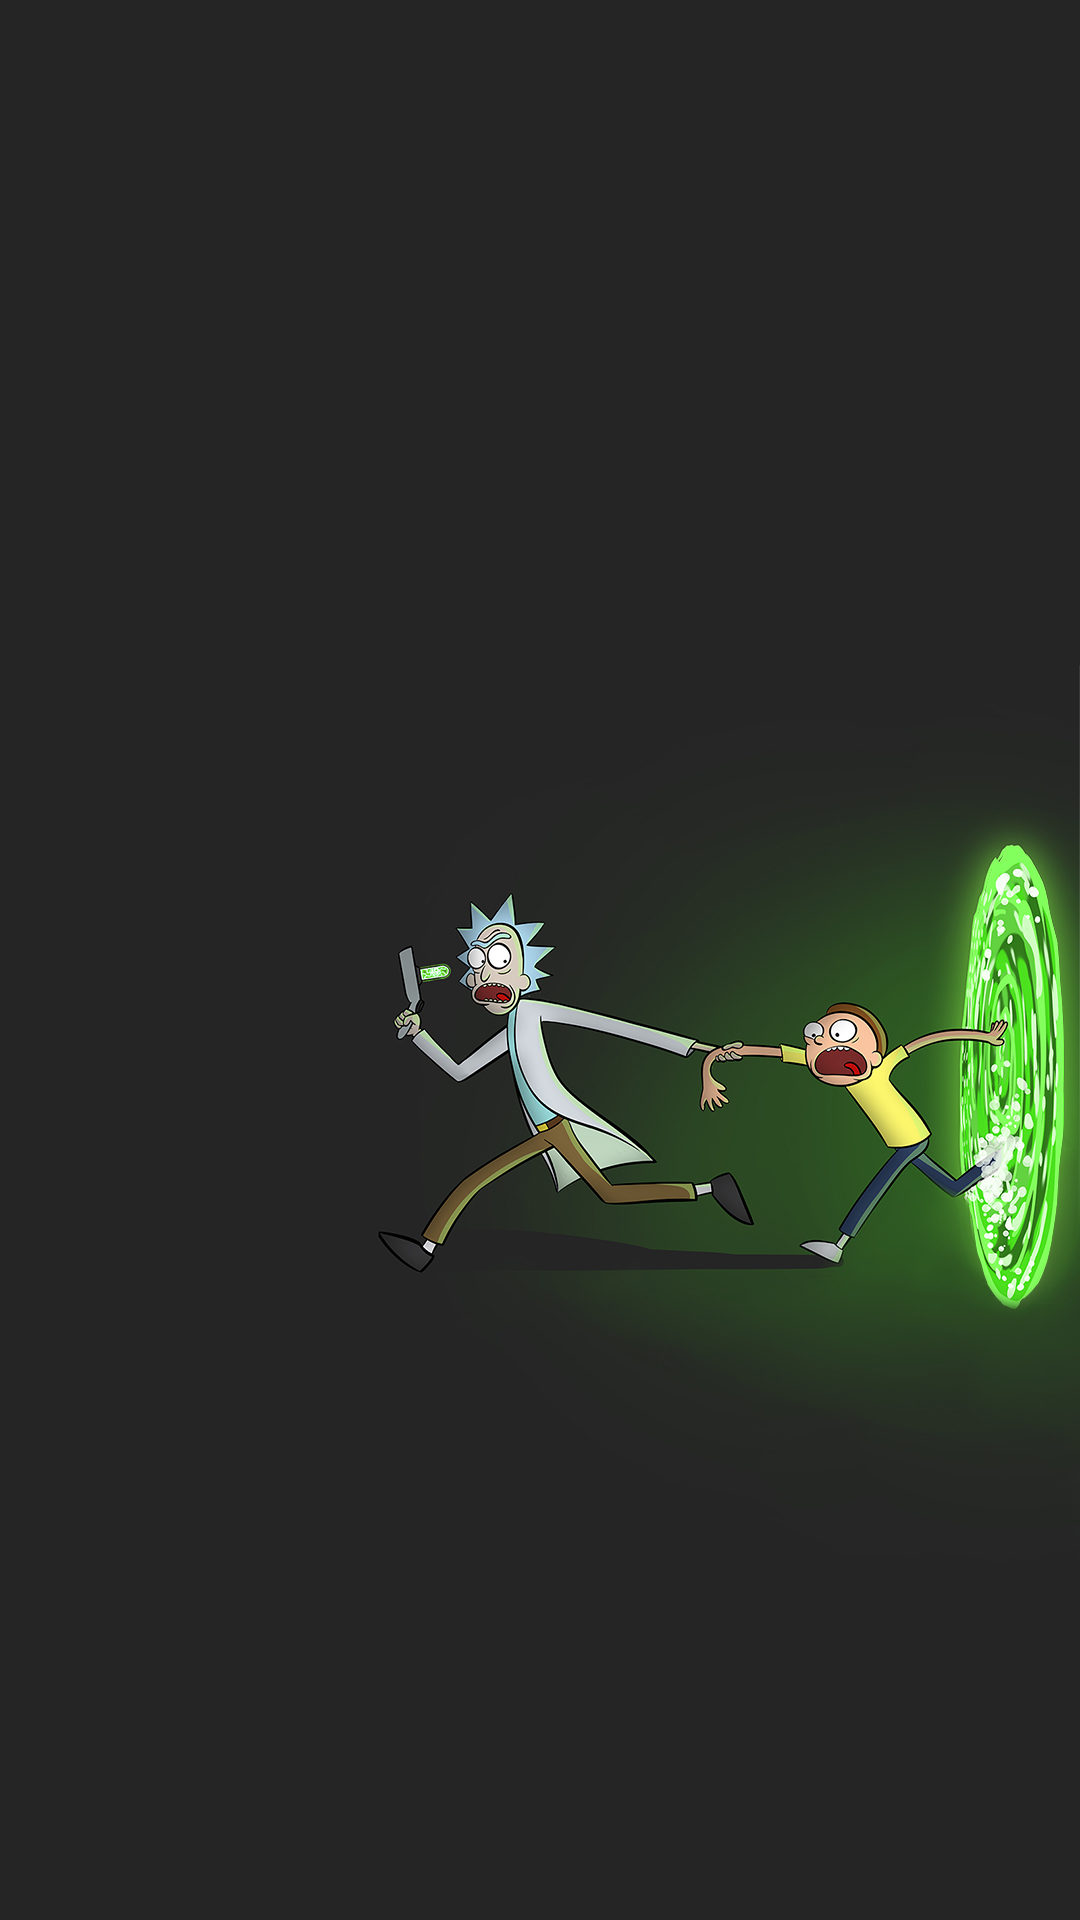 Rick and Morty iPhone Wallpaper   3D iPhone Wallpaper 1080x1920